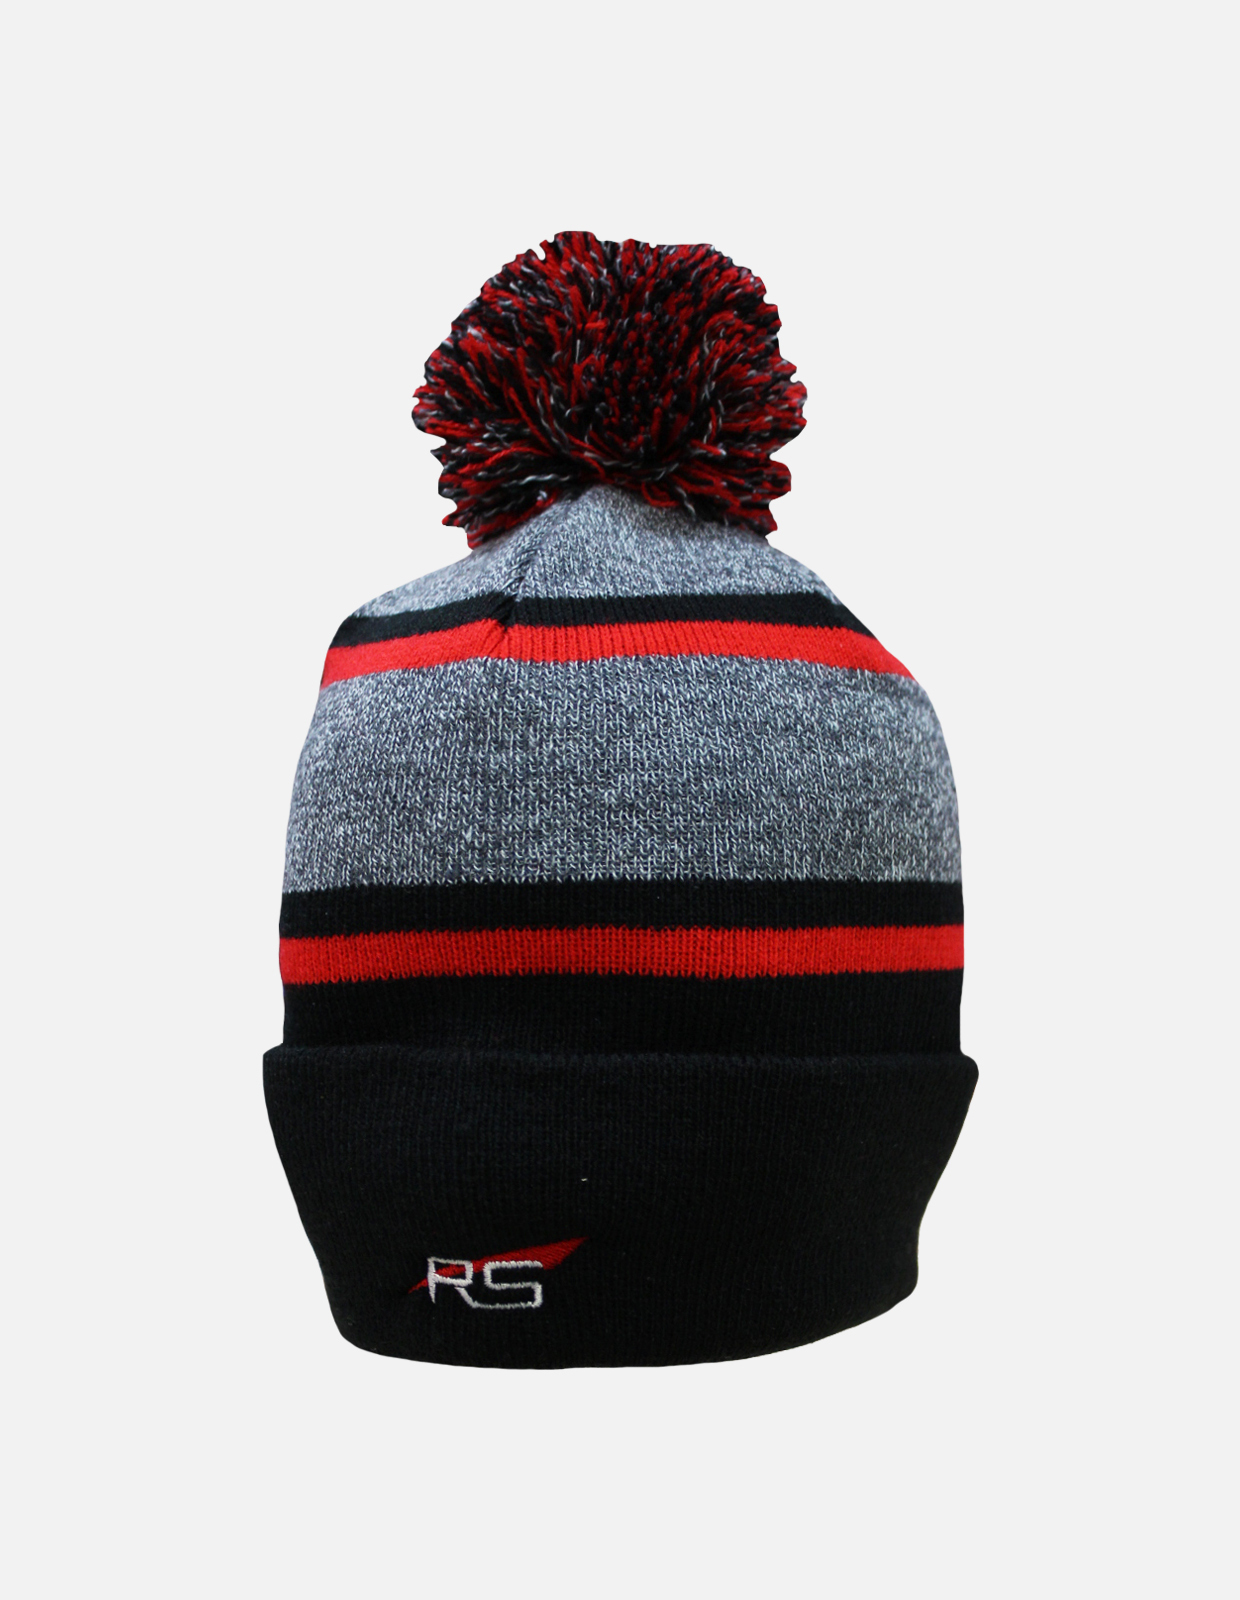 Rs toque black red